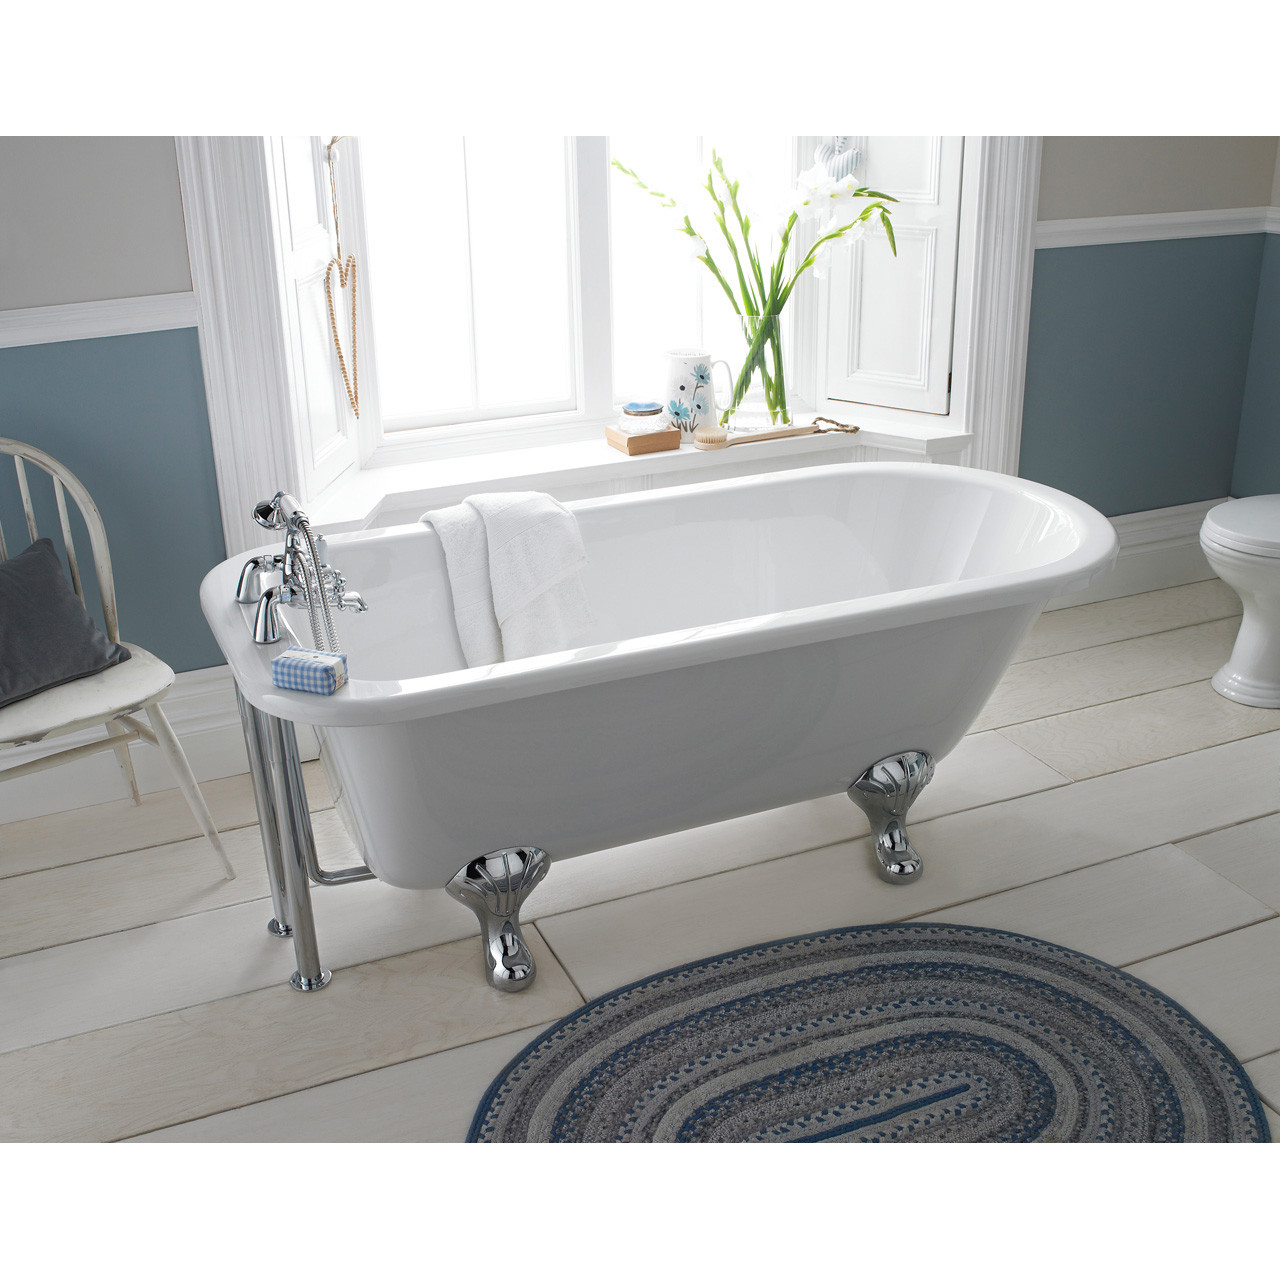 Premier White Berkshire 1700 Single Ended Freestanding Bath with Pride Legs - RL1707C2